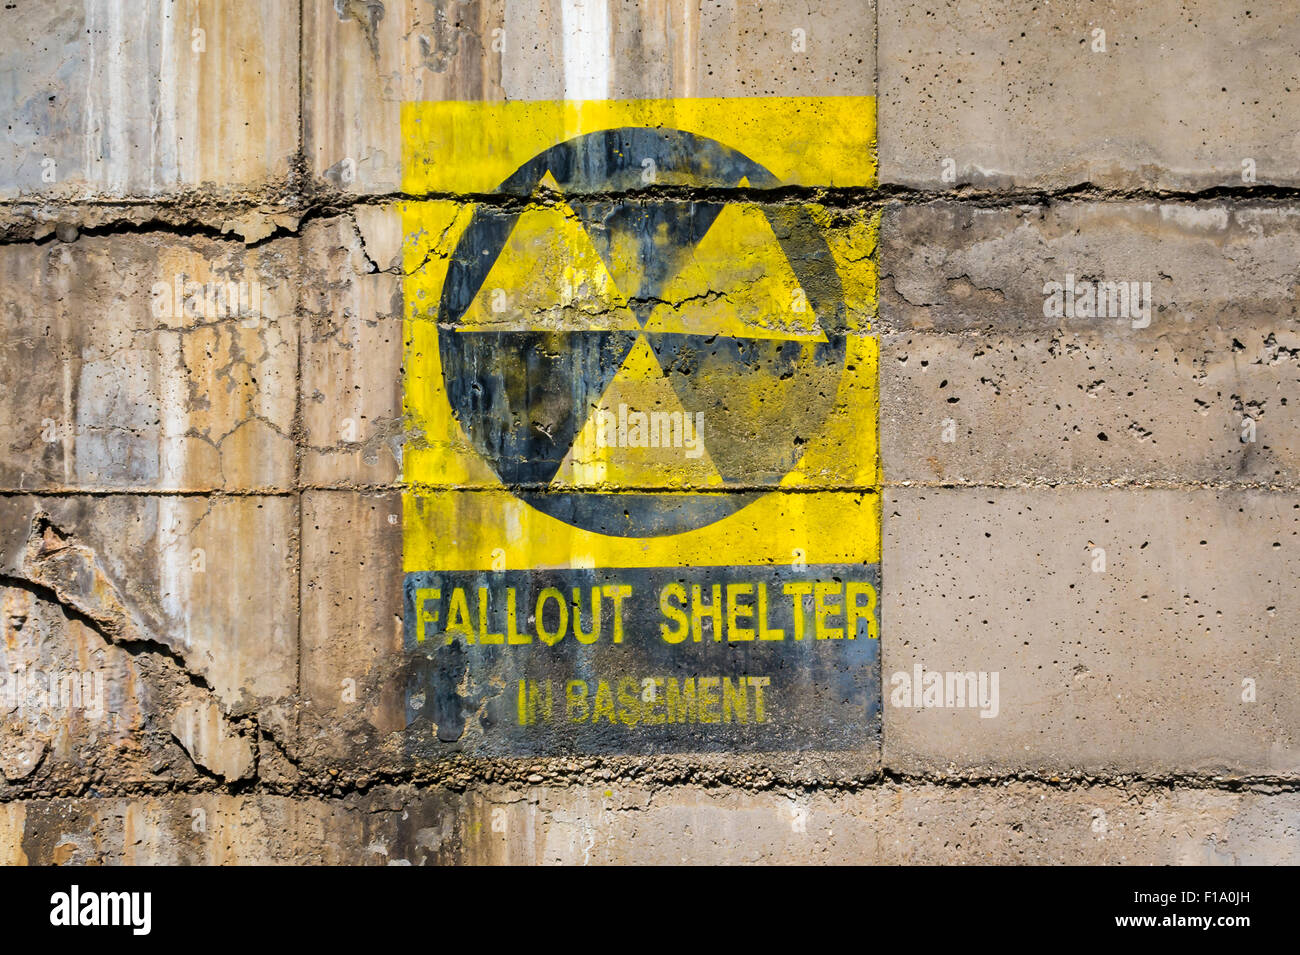 Fallout shelter sign at bunker entrance Stock Photo